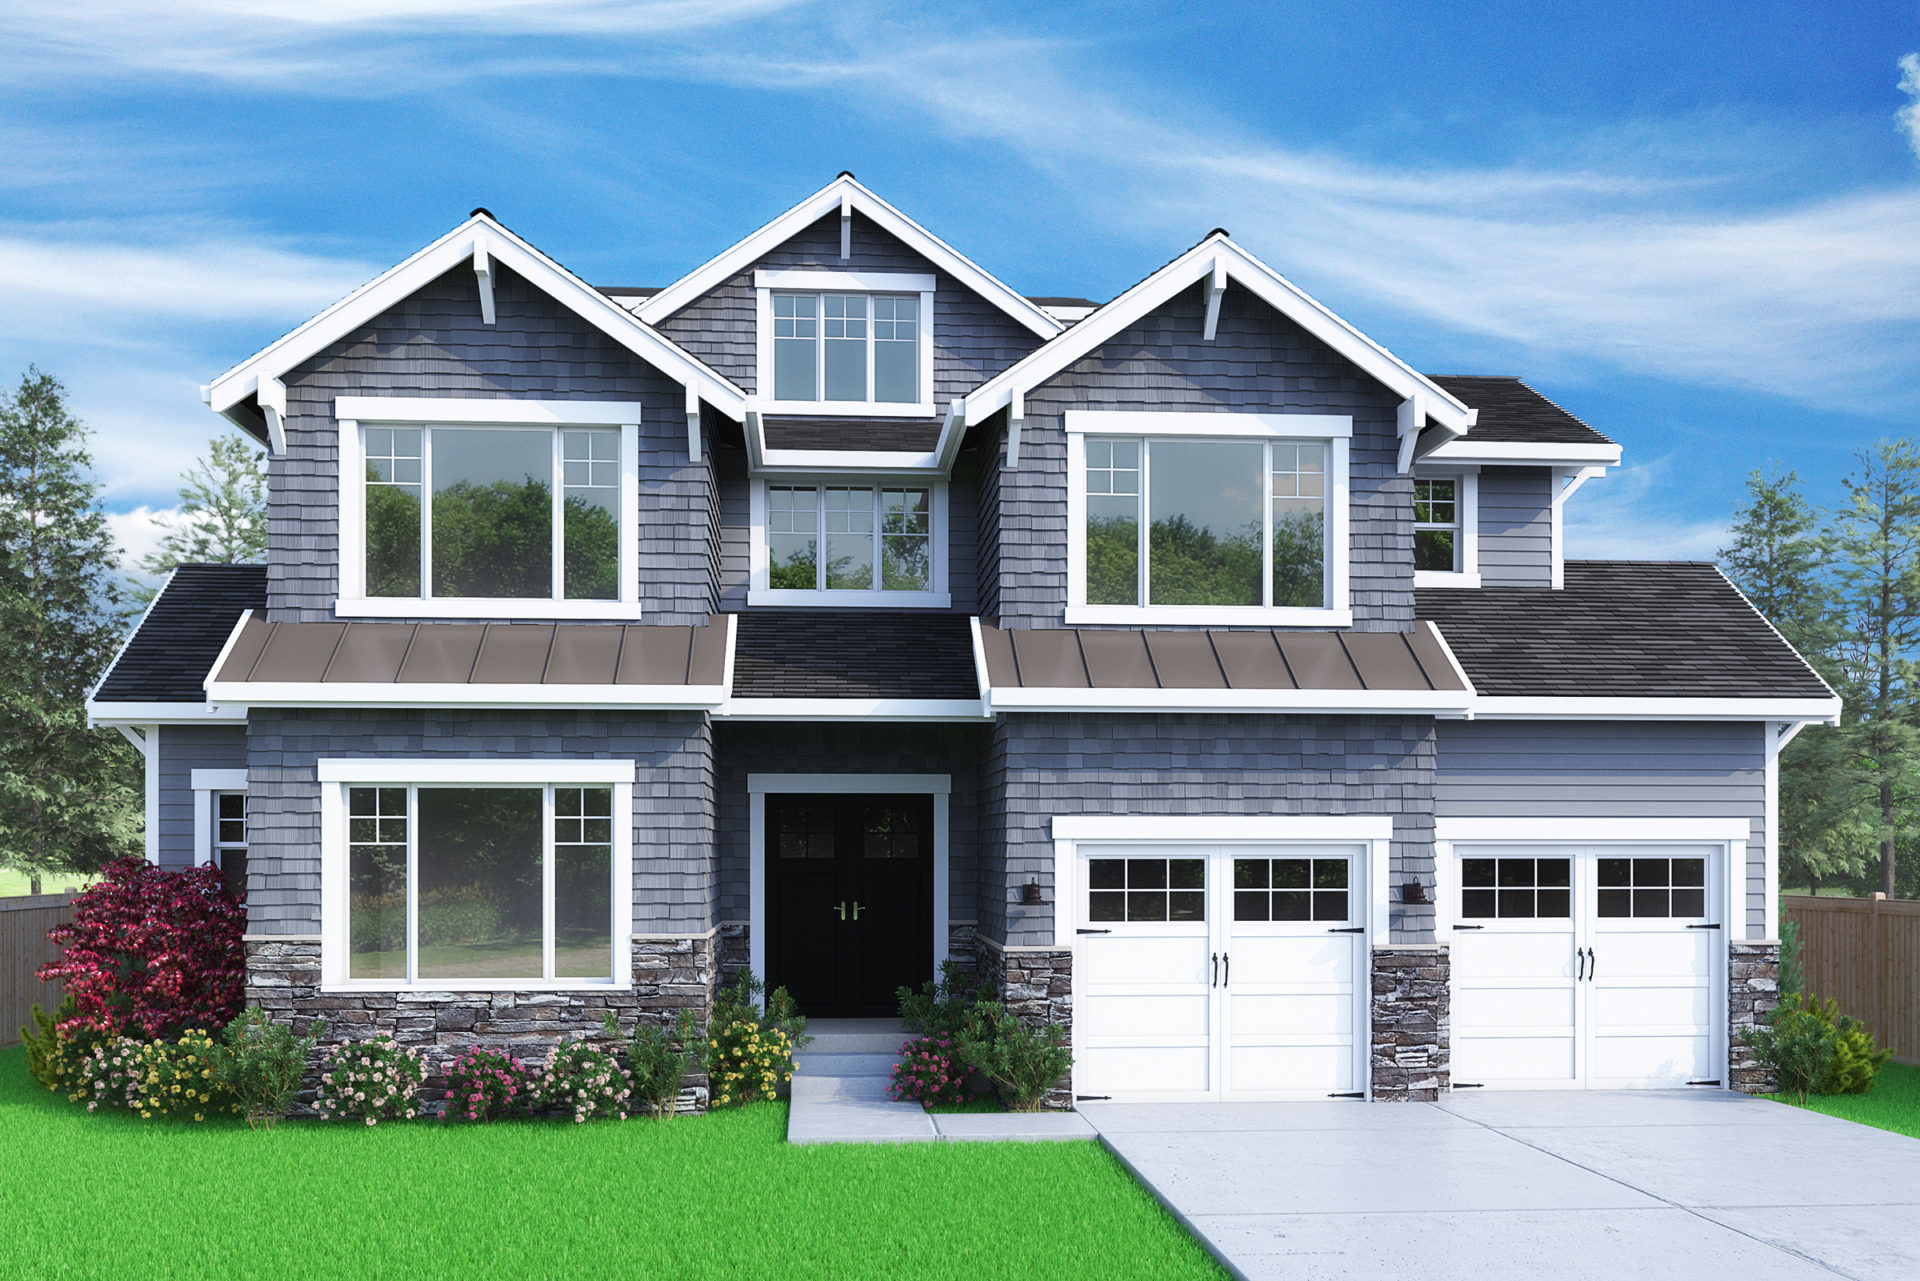 View our new luxury home construction on 31645 105th Ave SE in Bellevue, WA from MN Custom Homes